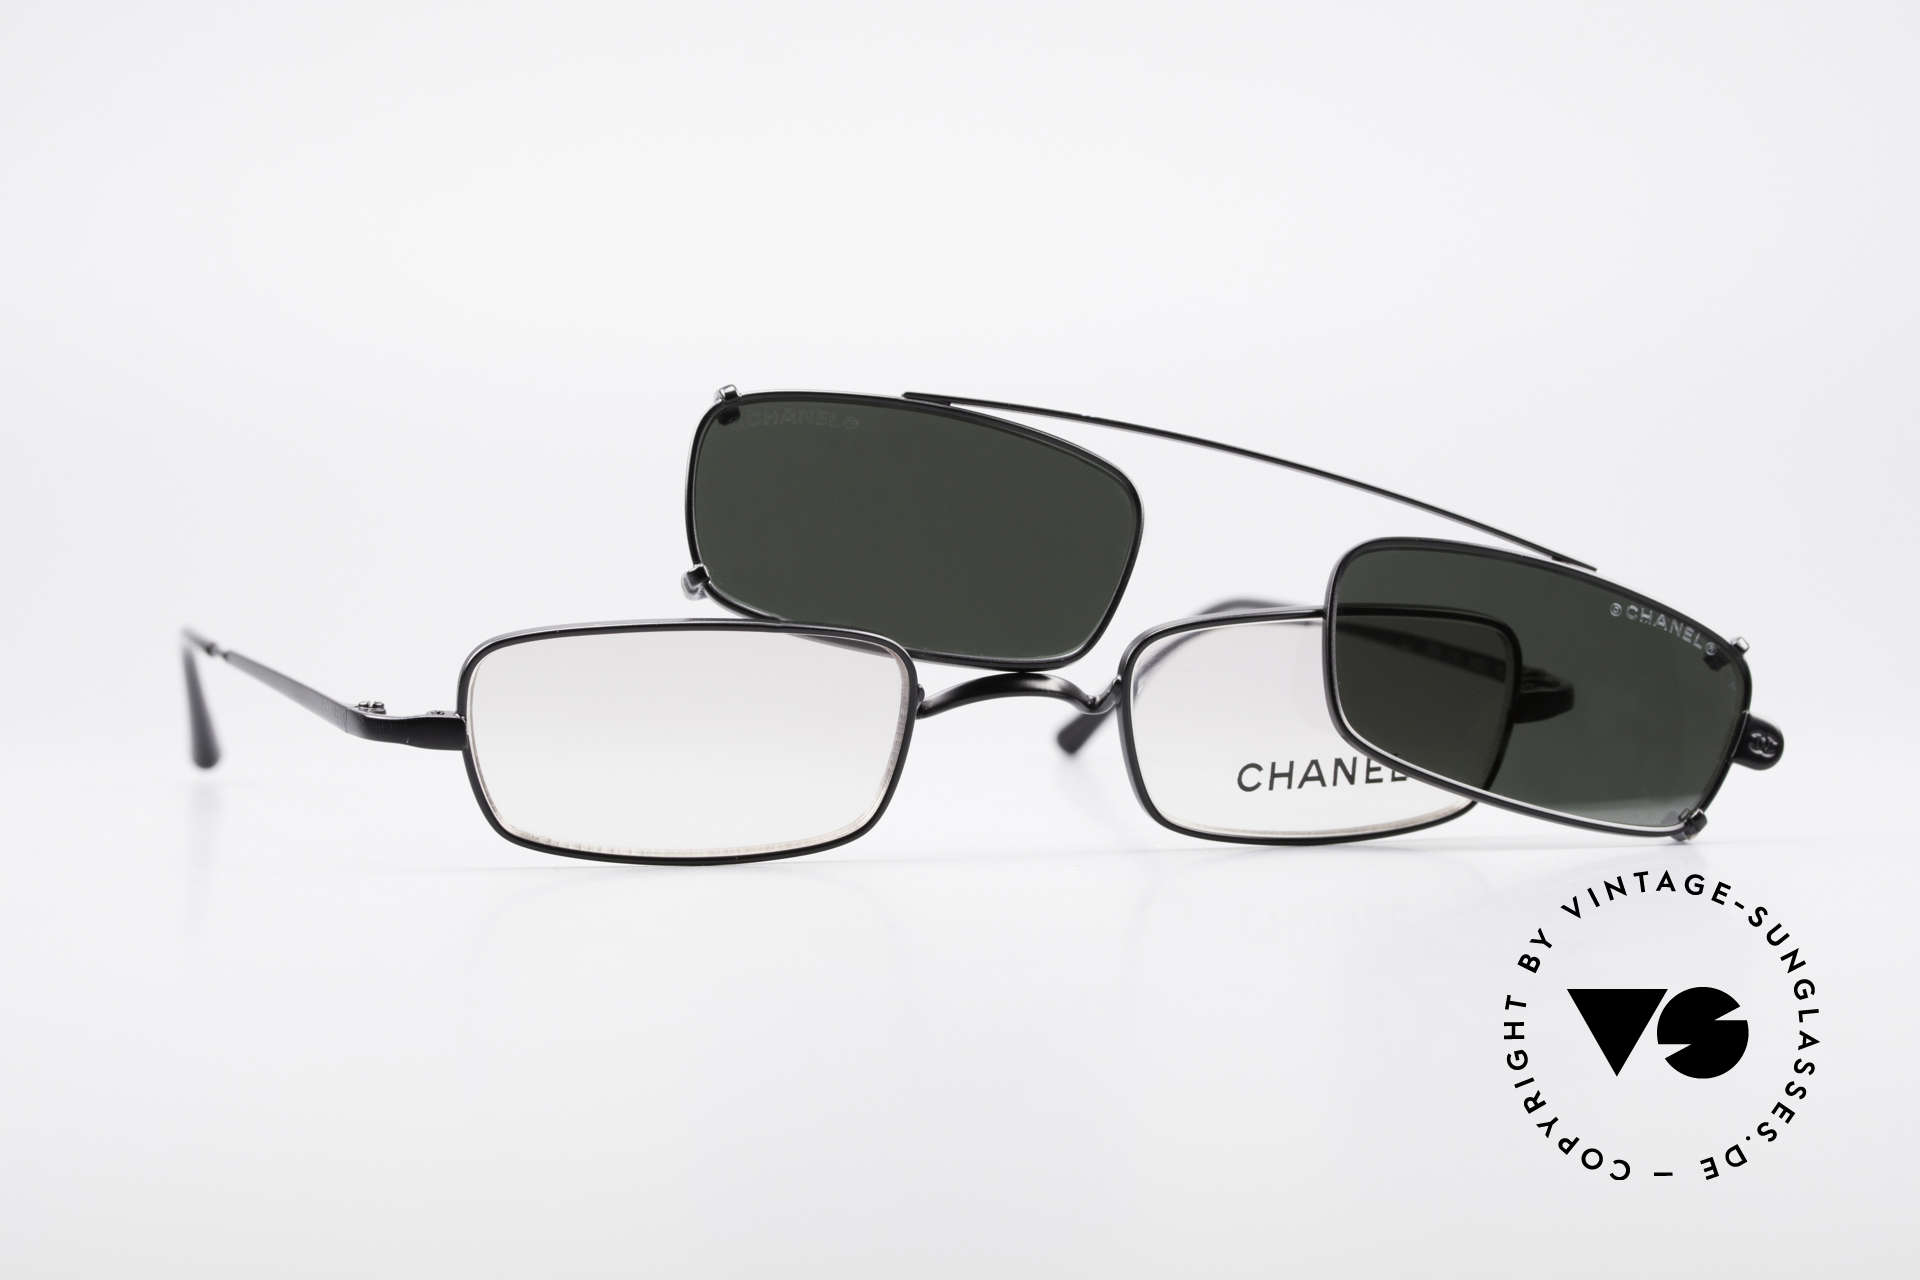 Chanel 2038 Luxury Glasses With Clip On, Size: small, Made for Men and Women